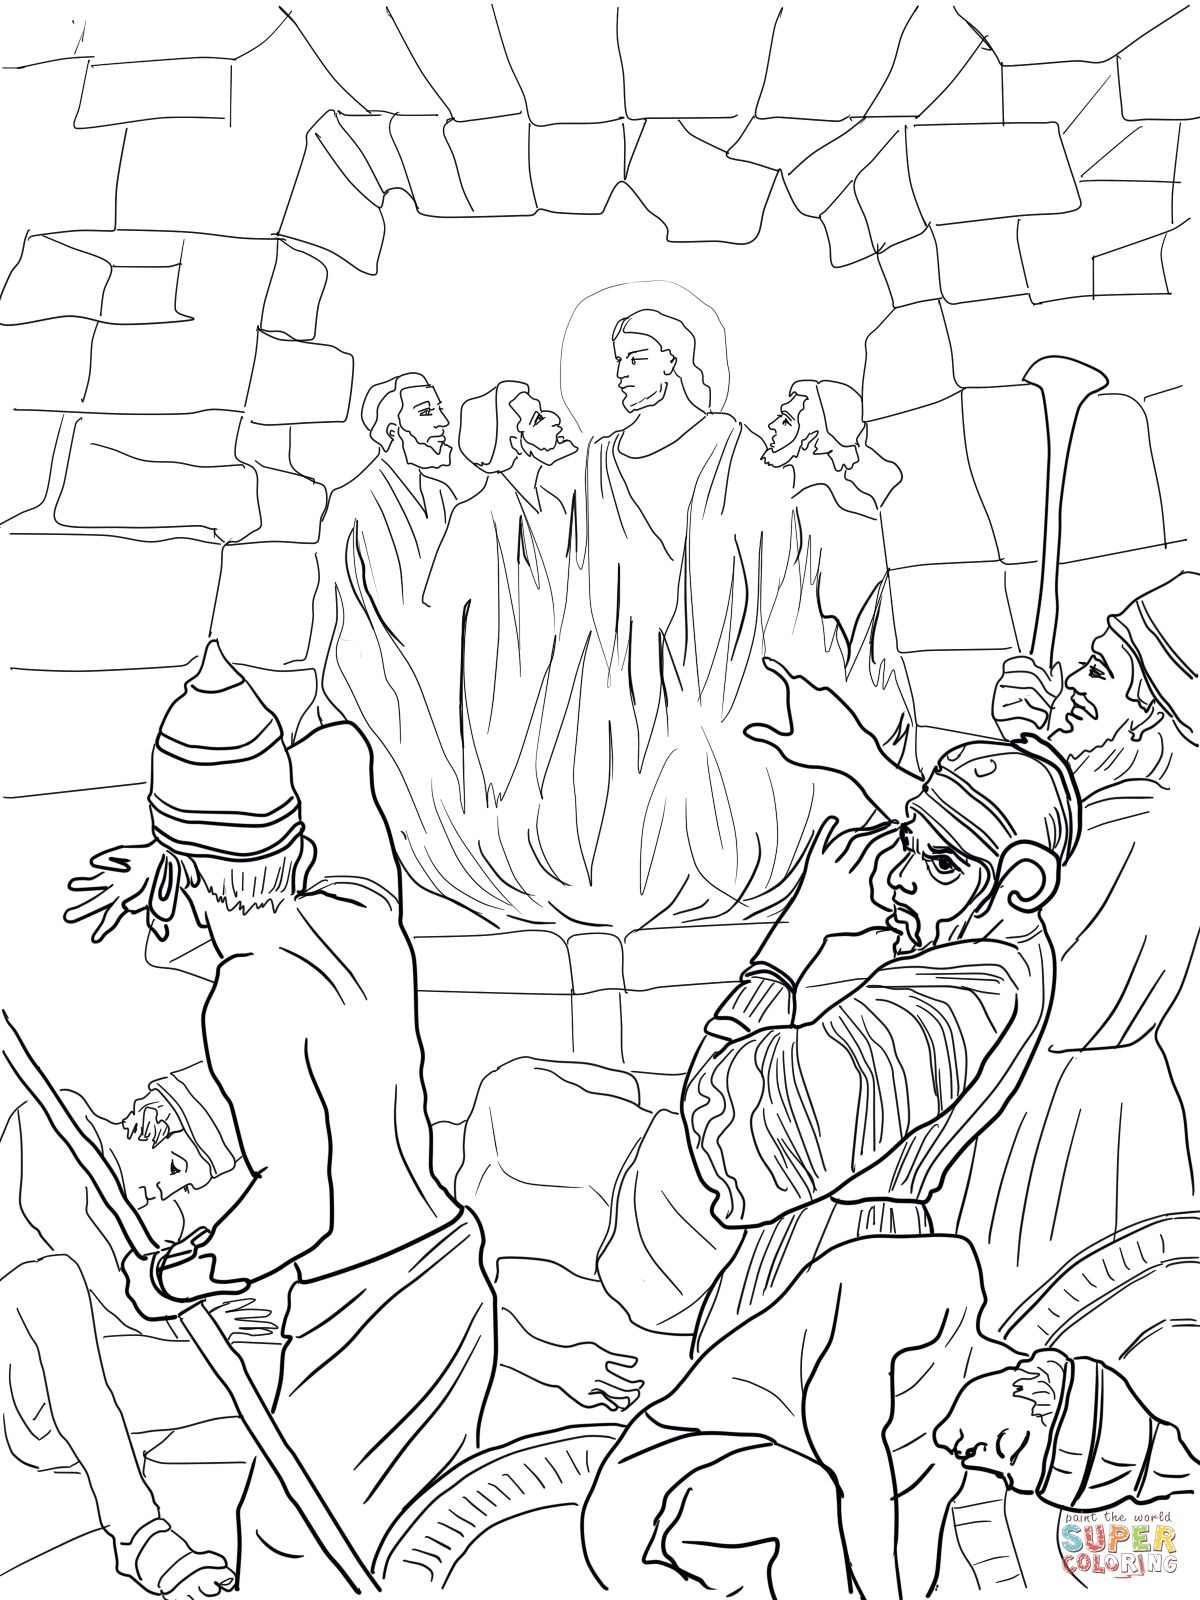 the fiery furnace activities shadrach meshach and abednego in the fiery furnace coloring online bible crafts bible coloring pages coloring pages the fiery furnace activities shadrach